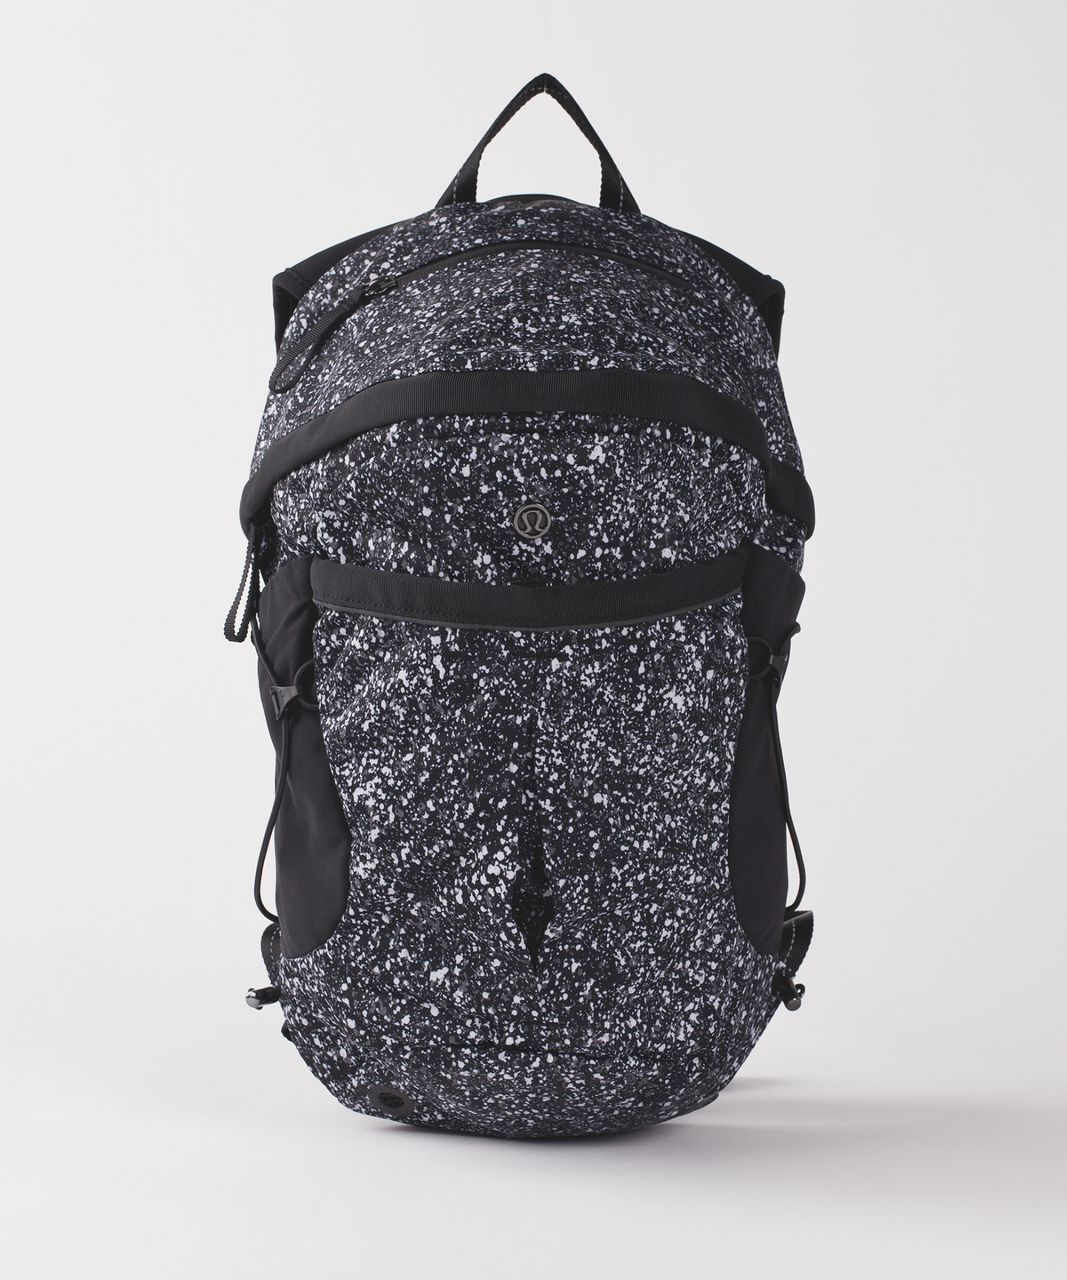 Lululemon Run All Day Backpack (Reflective) - Splatter Reflective